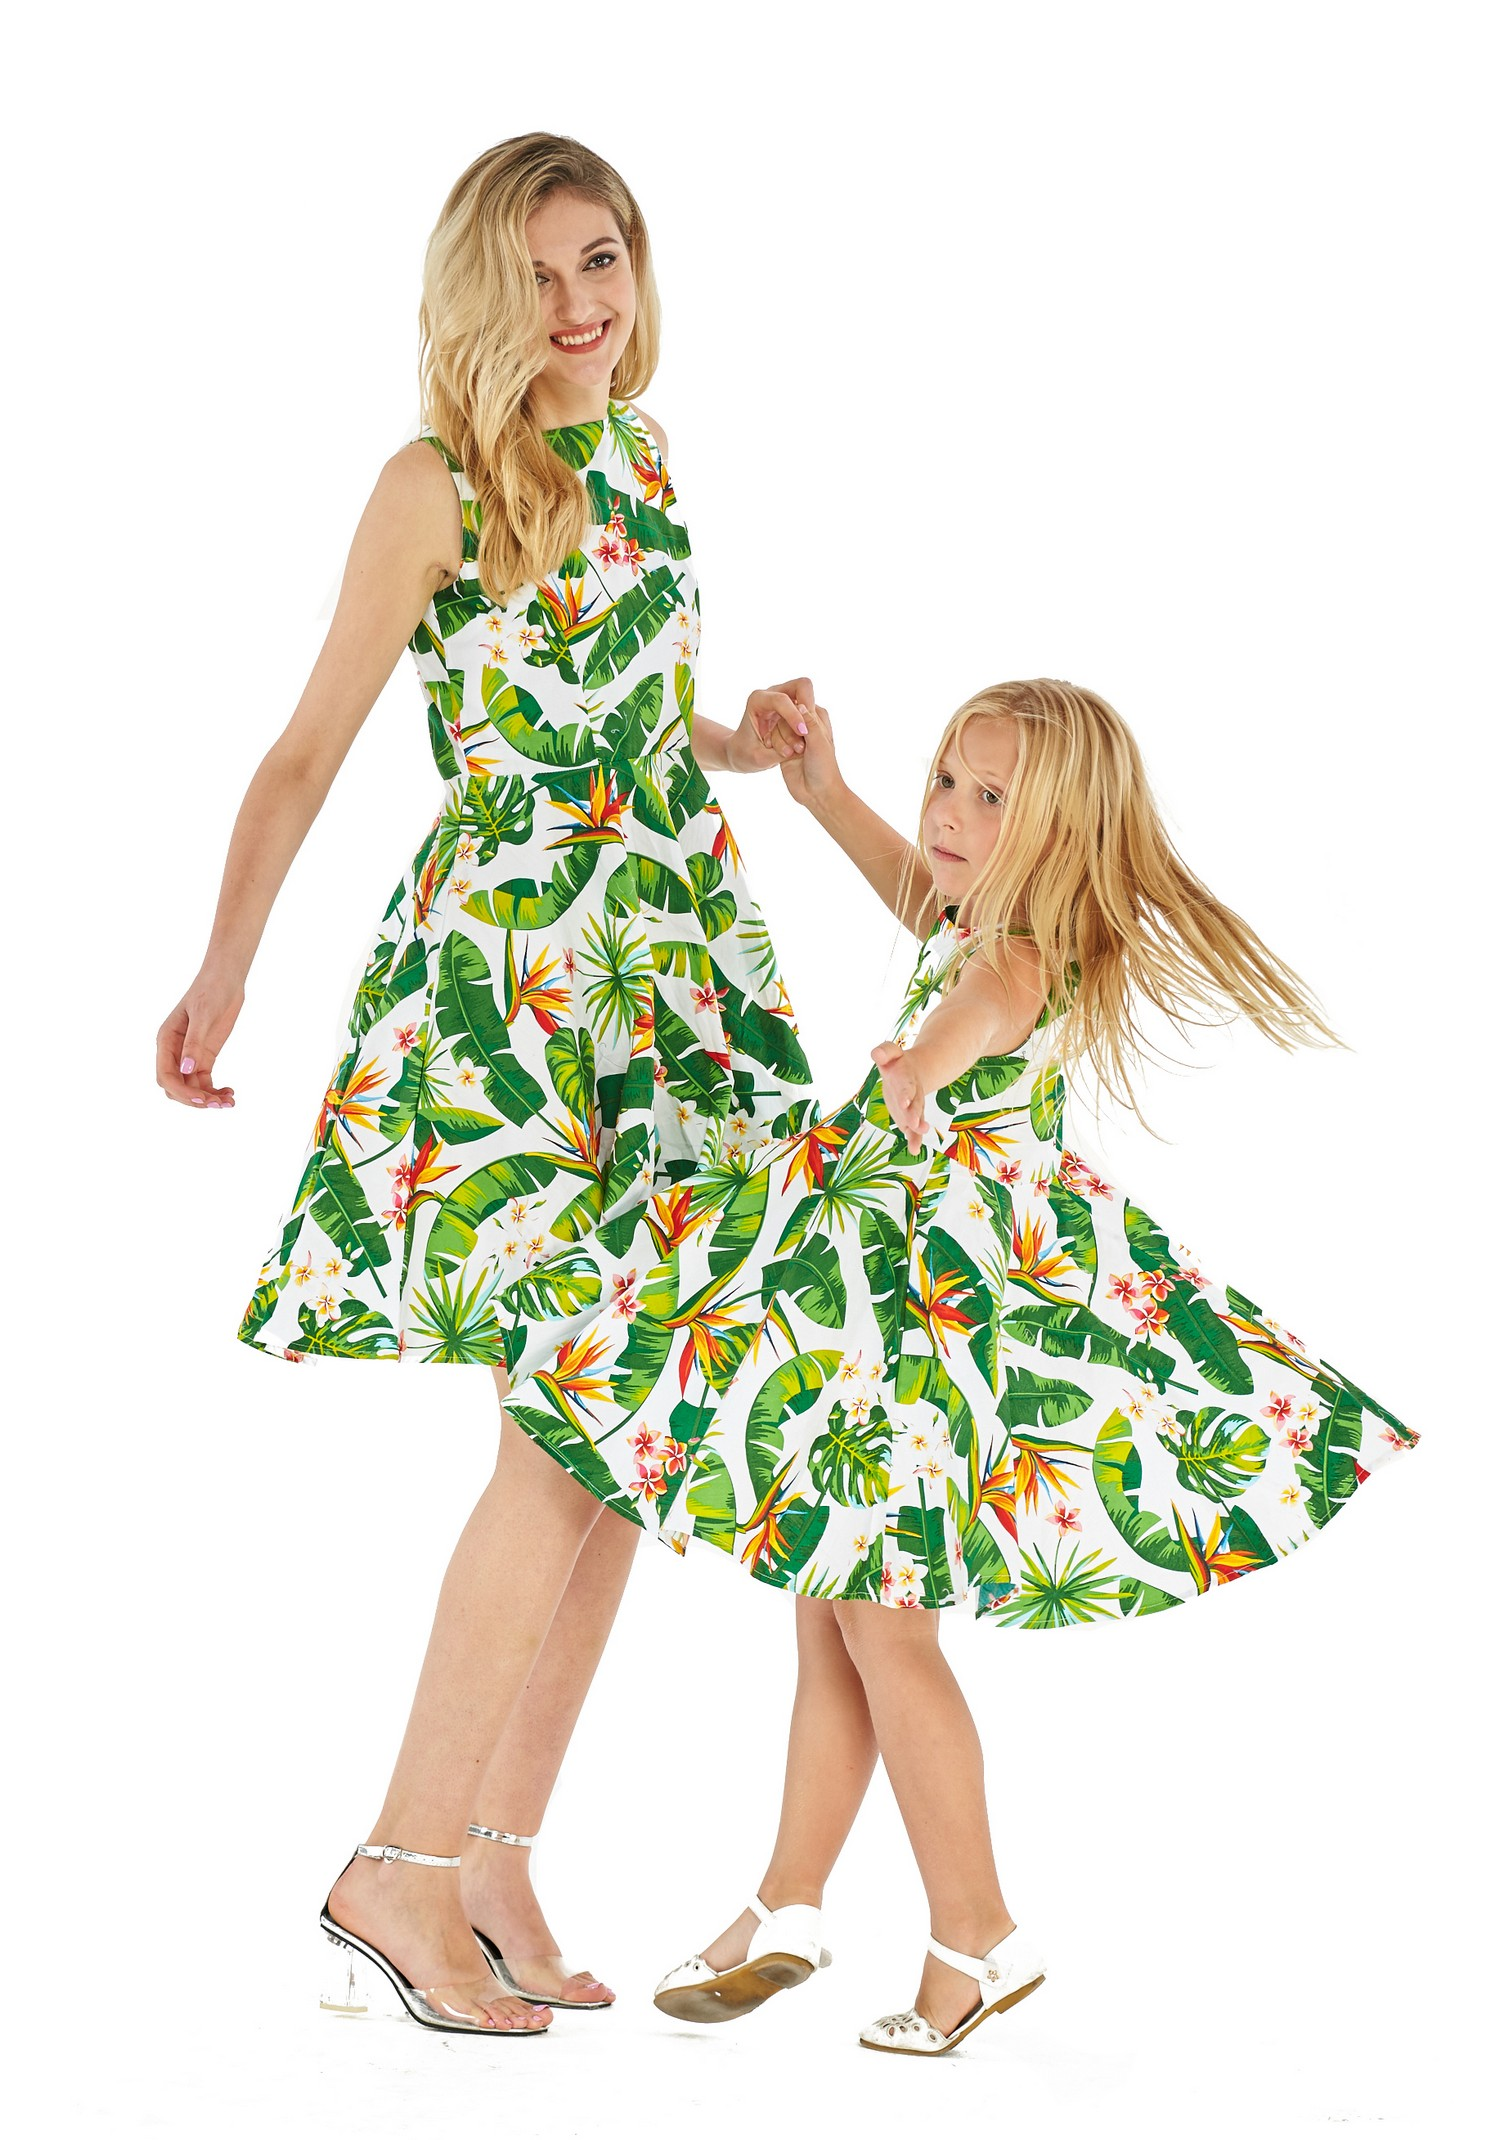 be010bdc8b88 Hawaii Hangover - Matching Hawaiian Luau Mother Daughter Vintage Fit and  Flare Dresses in Bird of Paradise in White 2XL-10 - Walmart.com